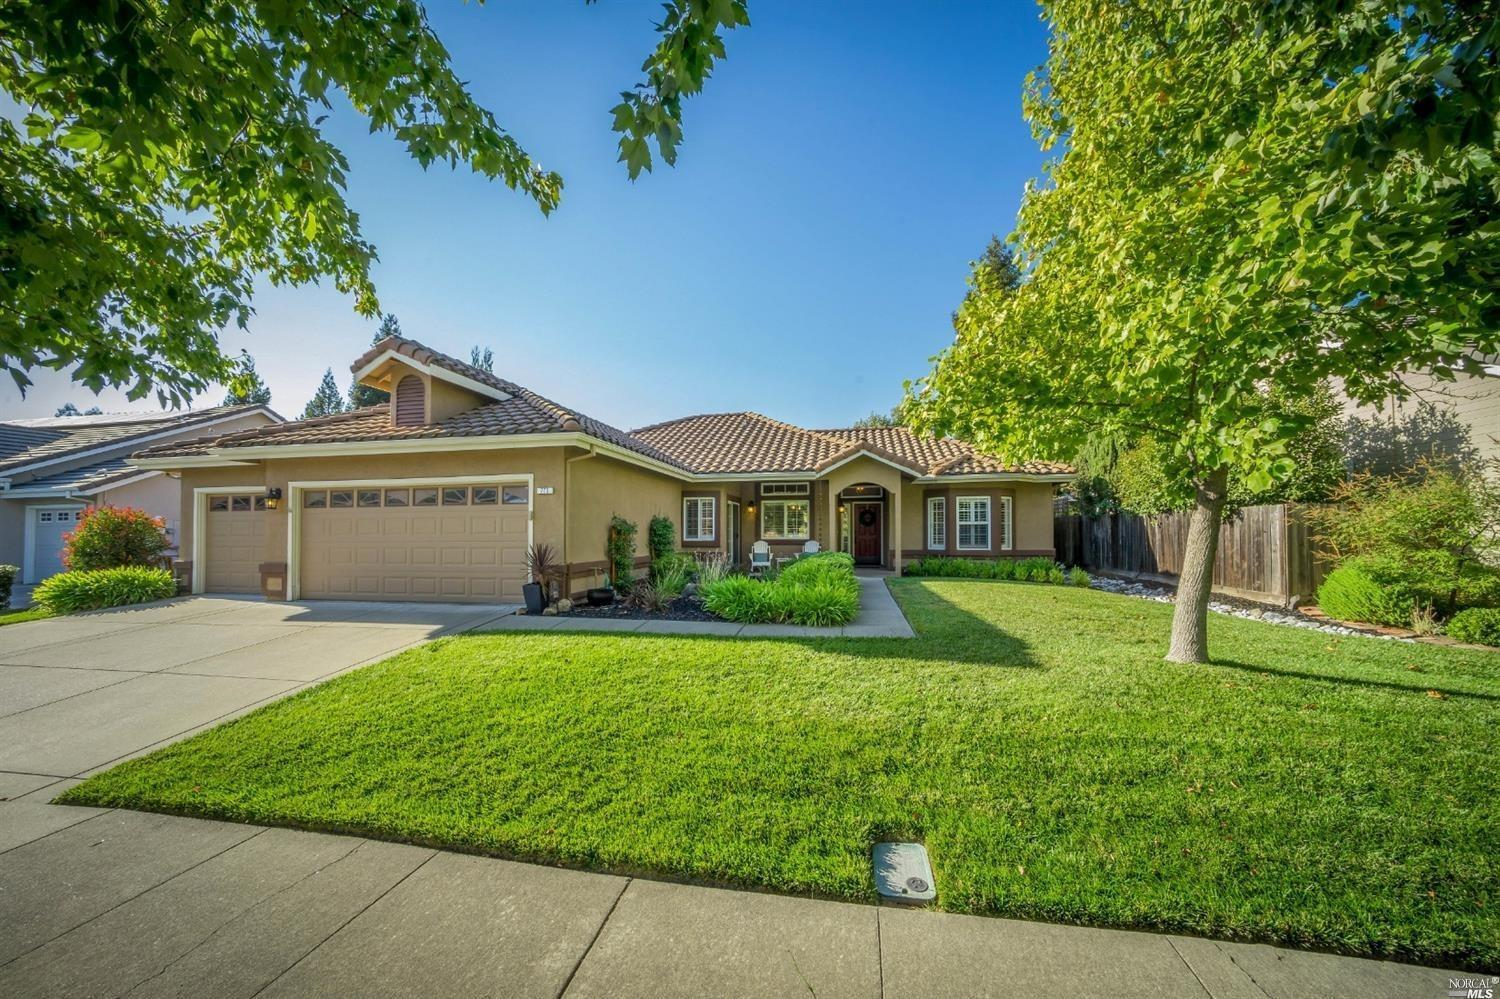 773 Emerald Bay Dr, Fairfield, CA, 94534